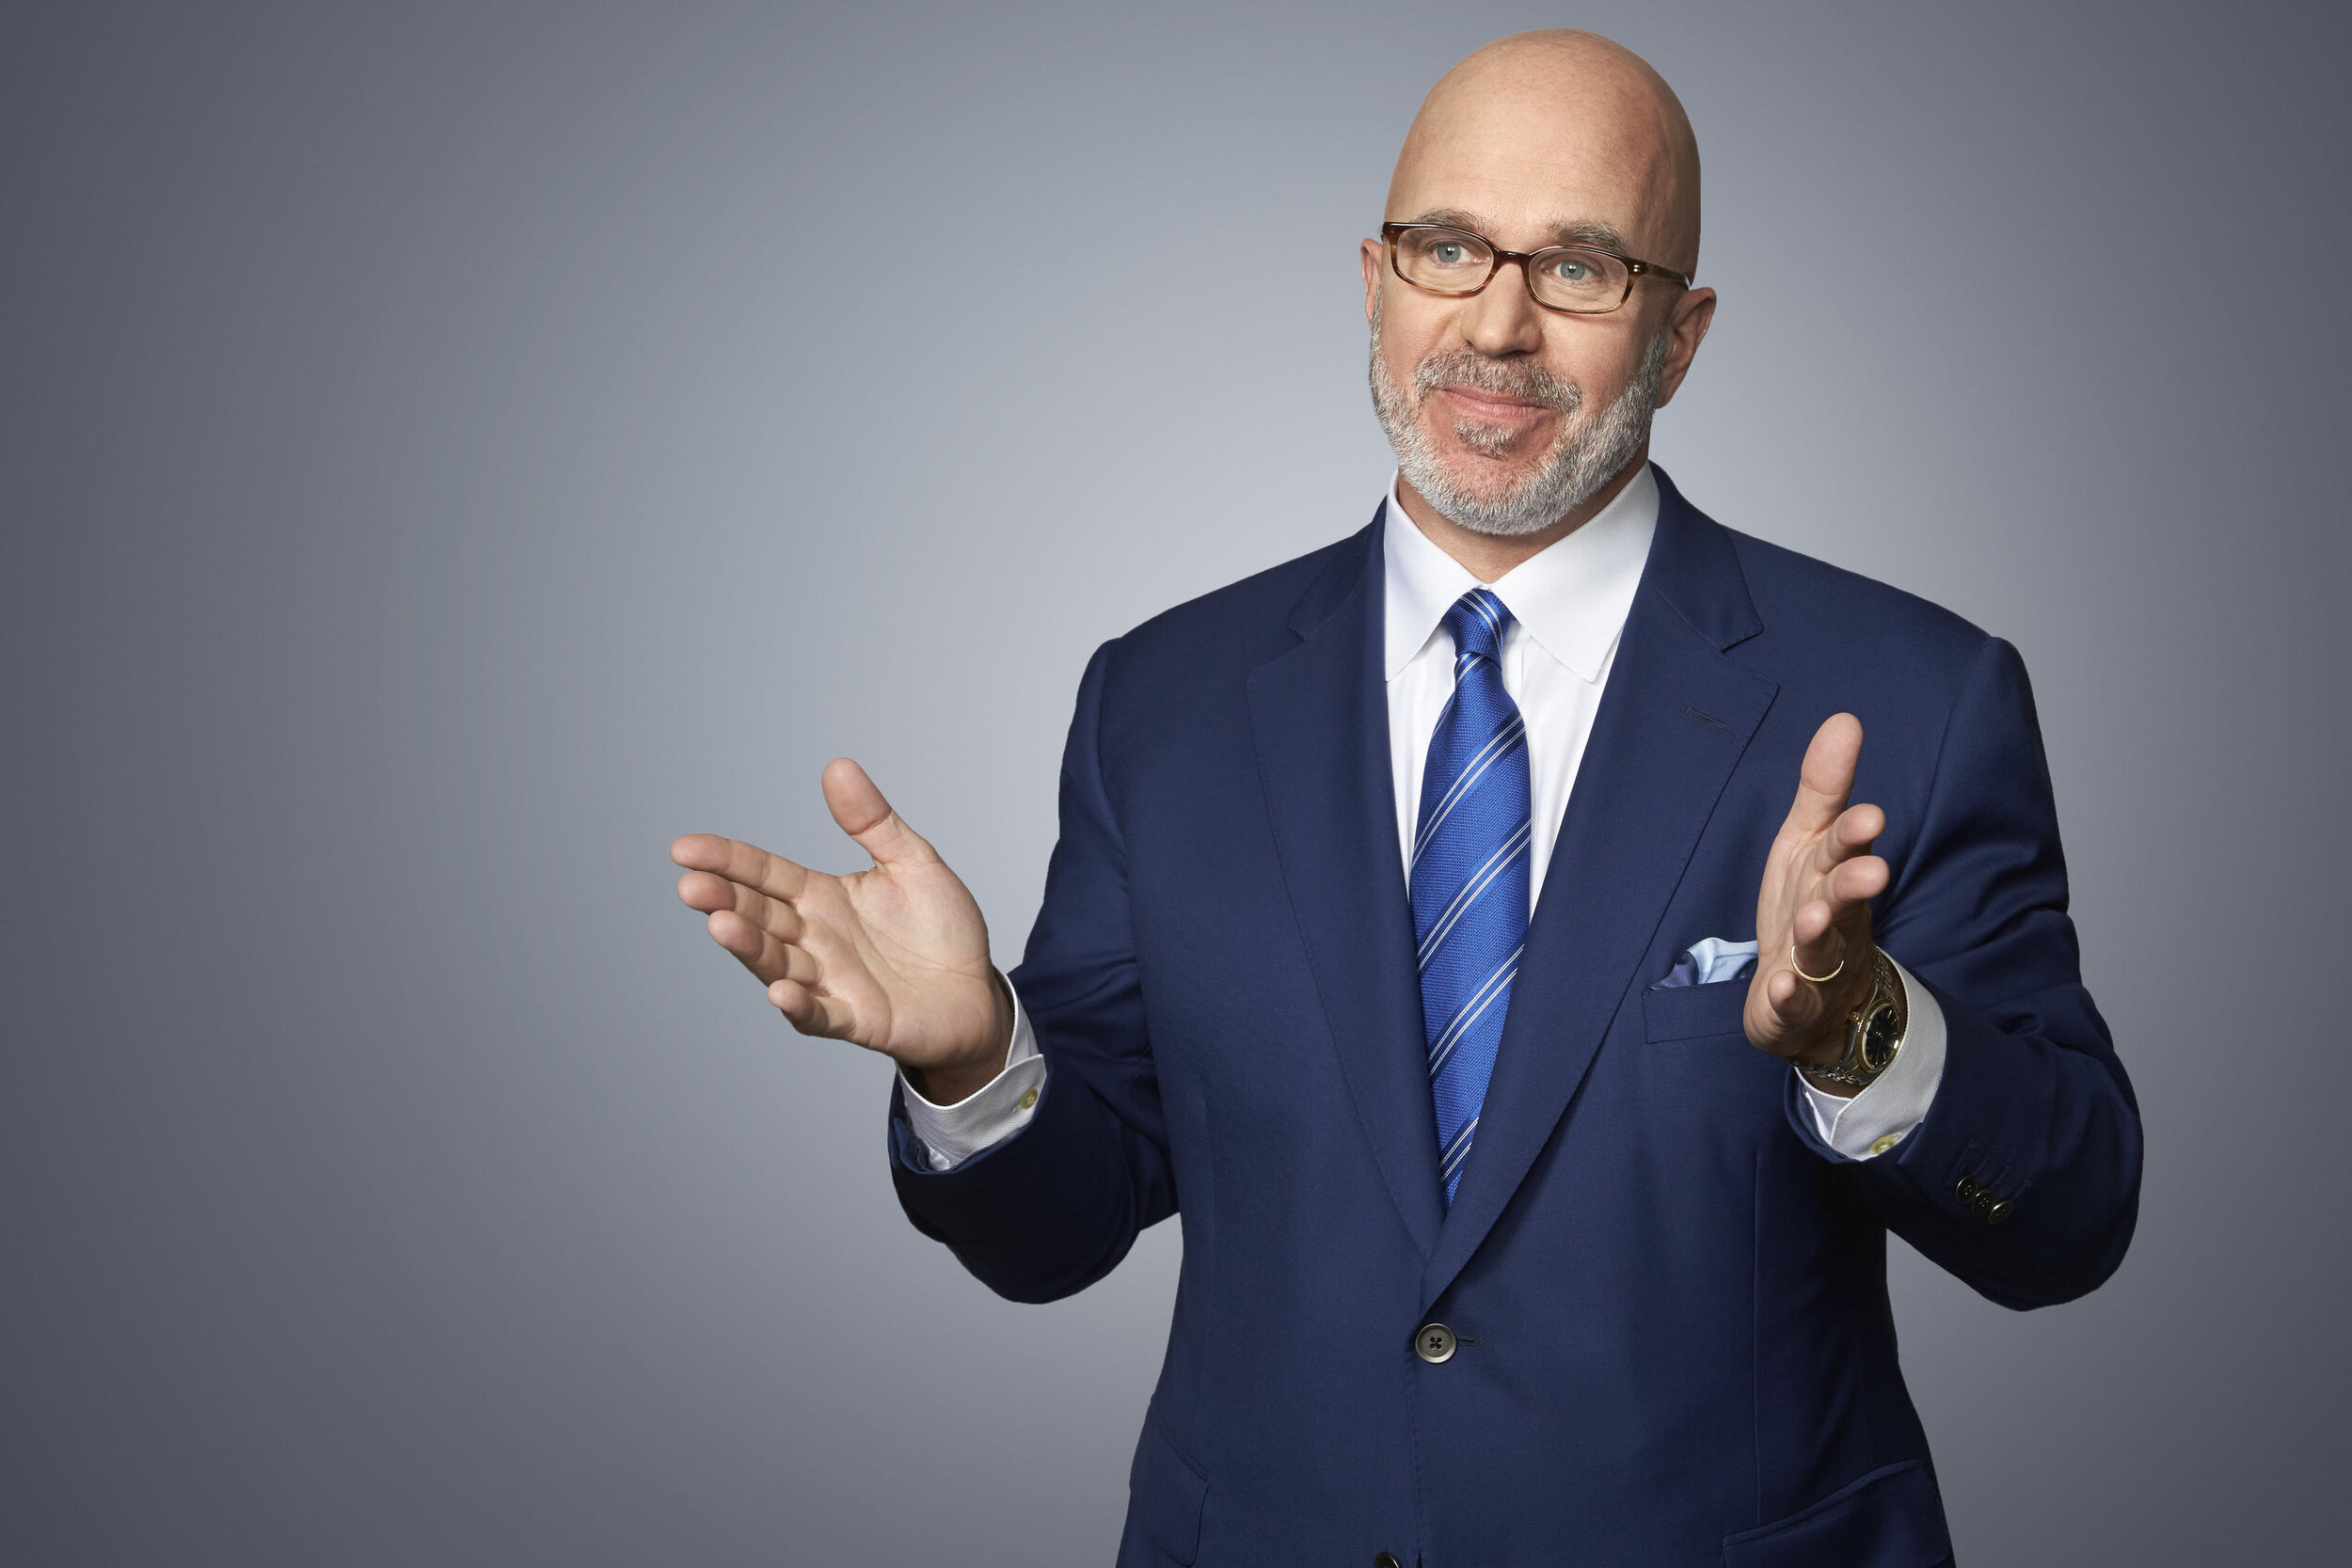 Michael Smerconish is the host of CNN's 'Smerconish' and SiriusXM's 'Michael Smerconish Show on POTUS'